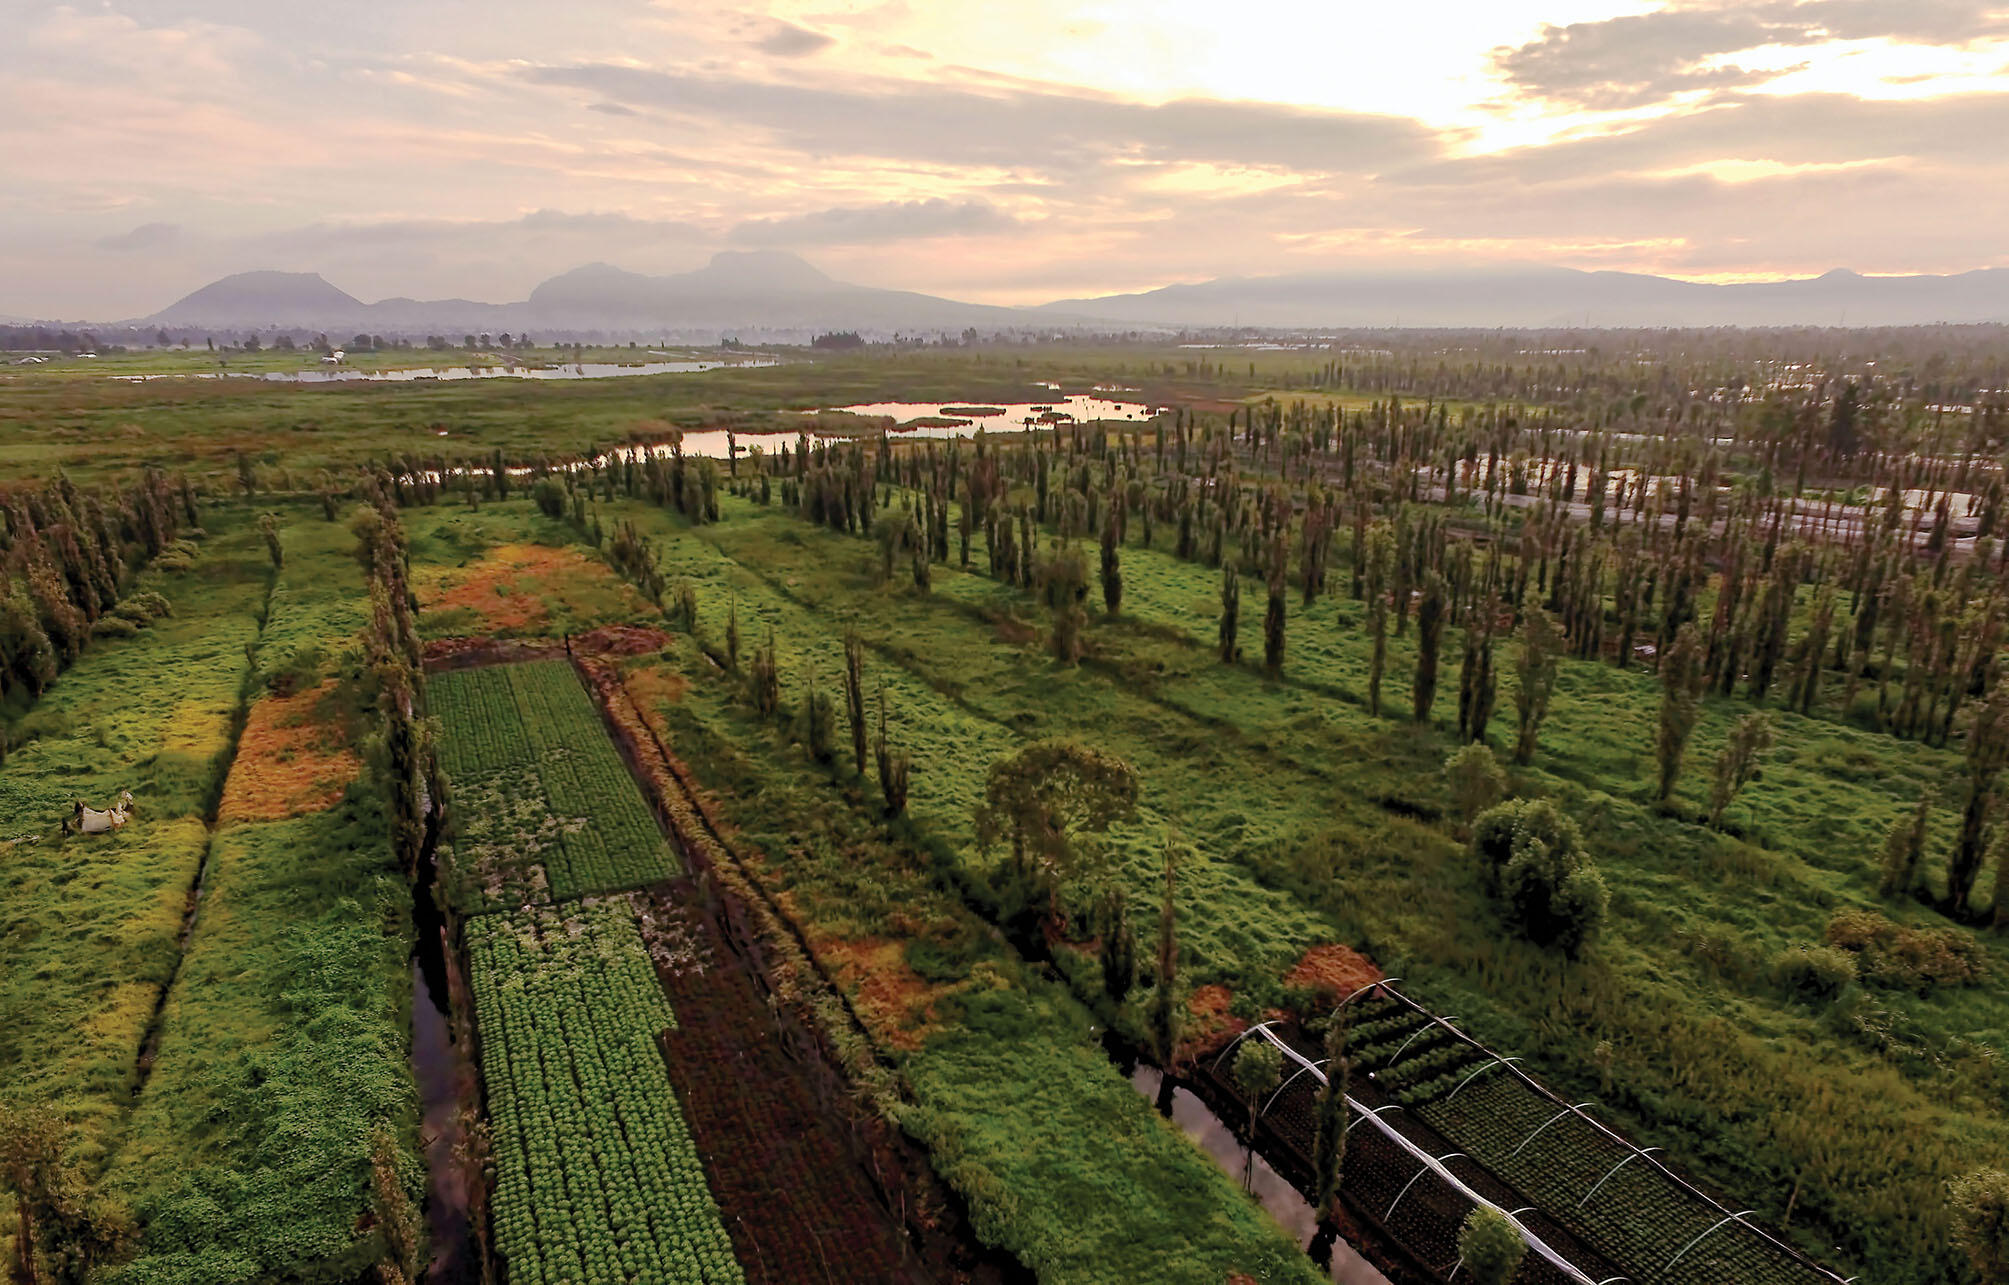 The urban sprawl of Mexico City replaced well-watered land that promotes agriculture in the chinampas of Xochimilco, whose fields are shown here in an aerial shot of green vegetation and canals, less than 15 miles away.  (Photo by Pablo Leautaud.)